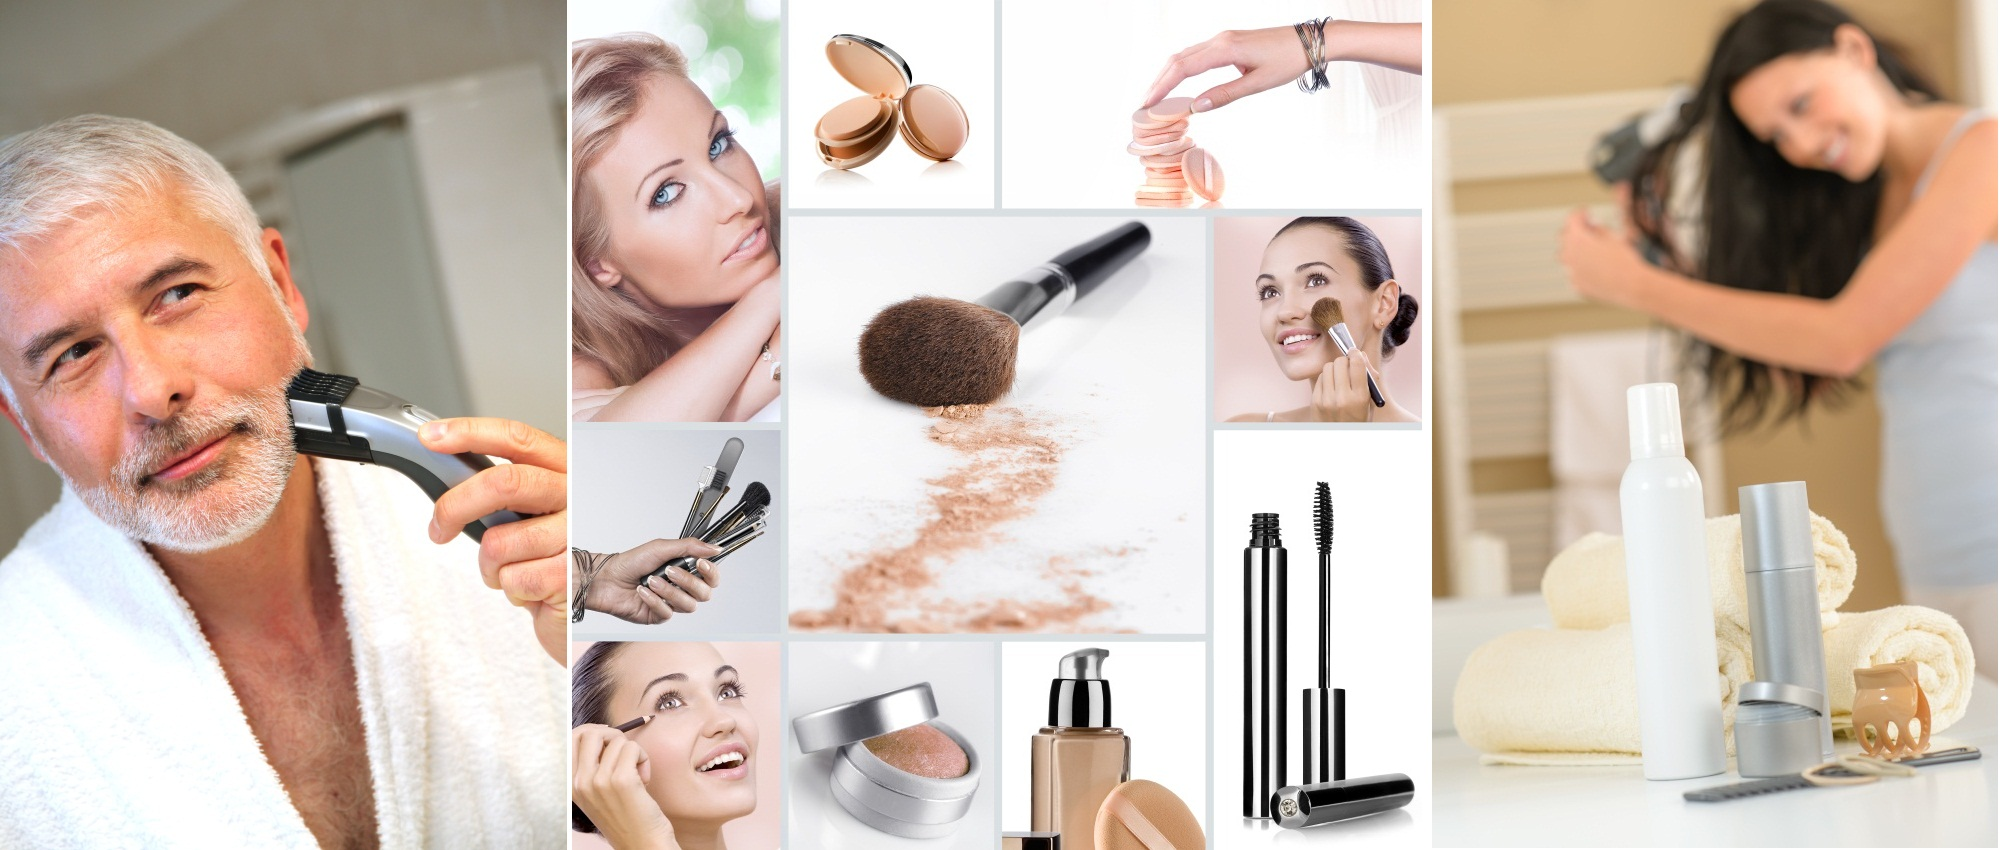 Personal Care and Beauty Business Advisors